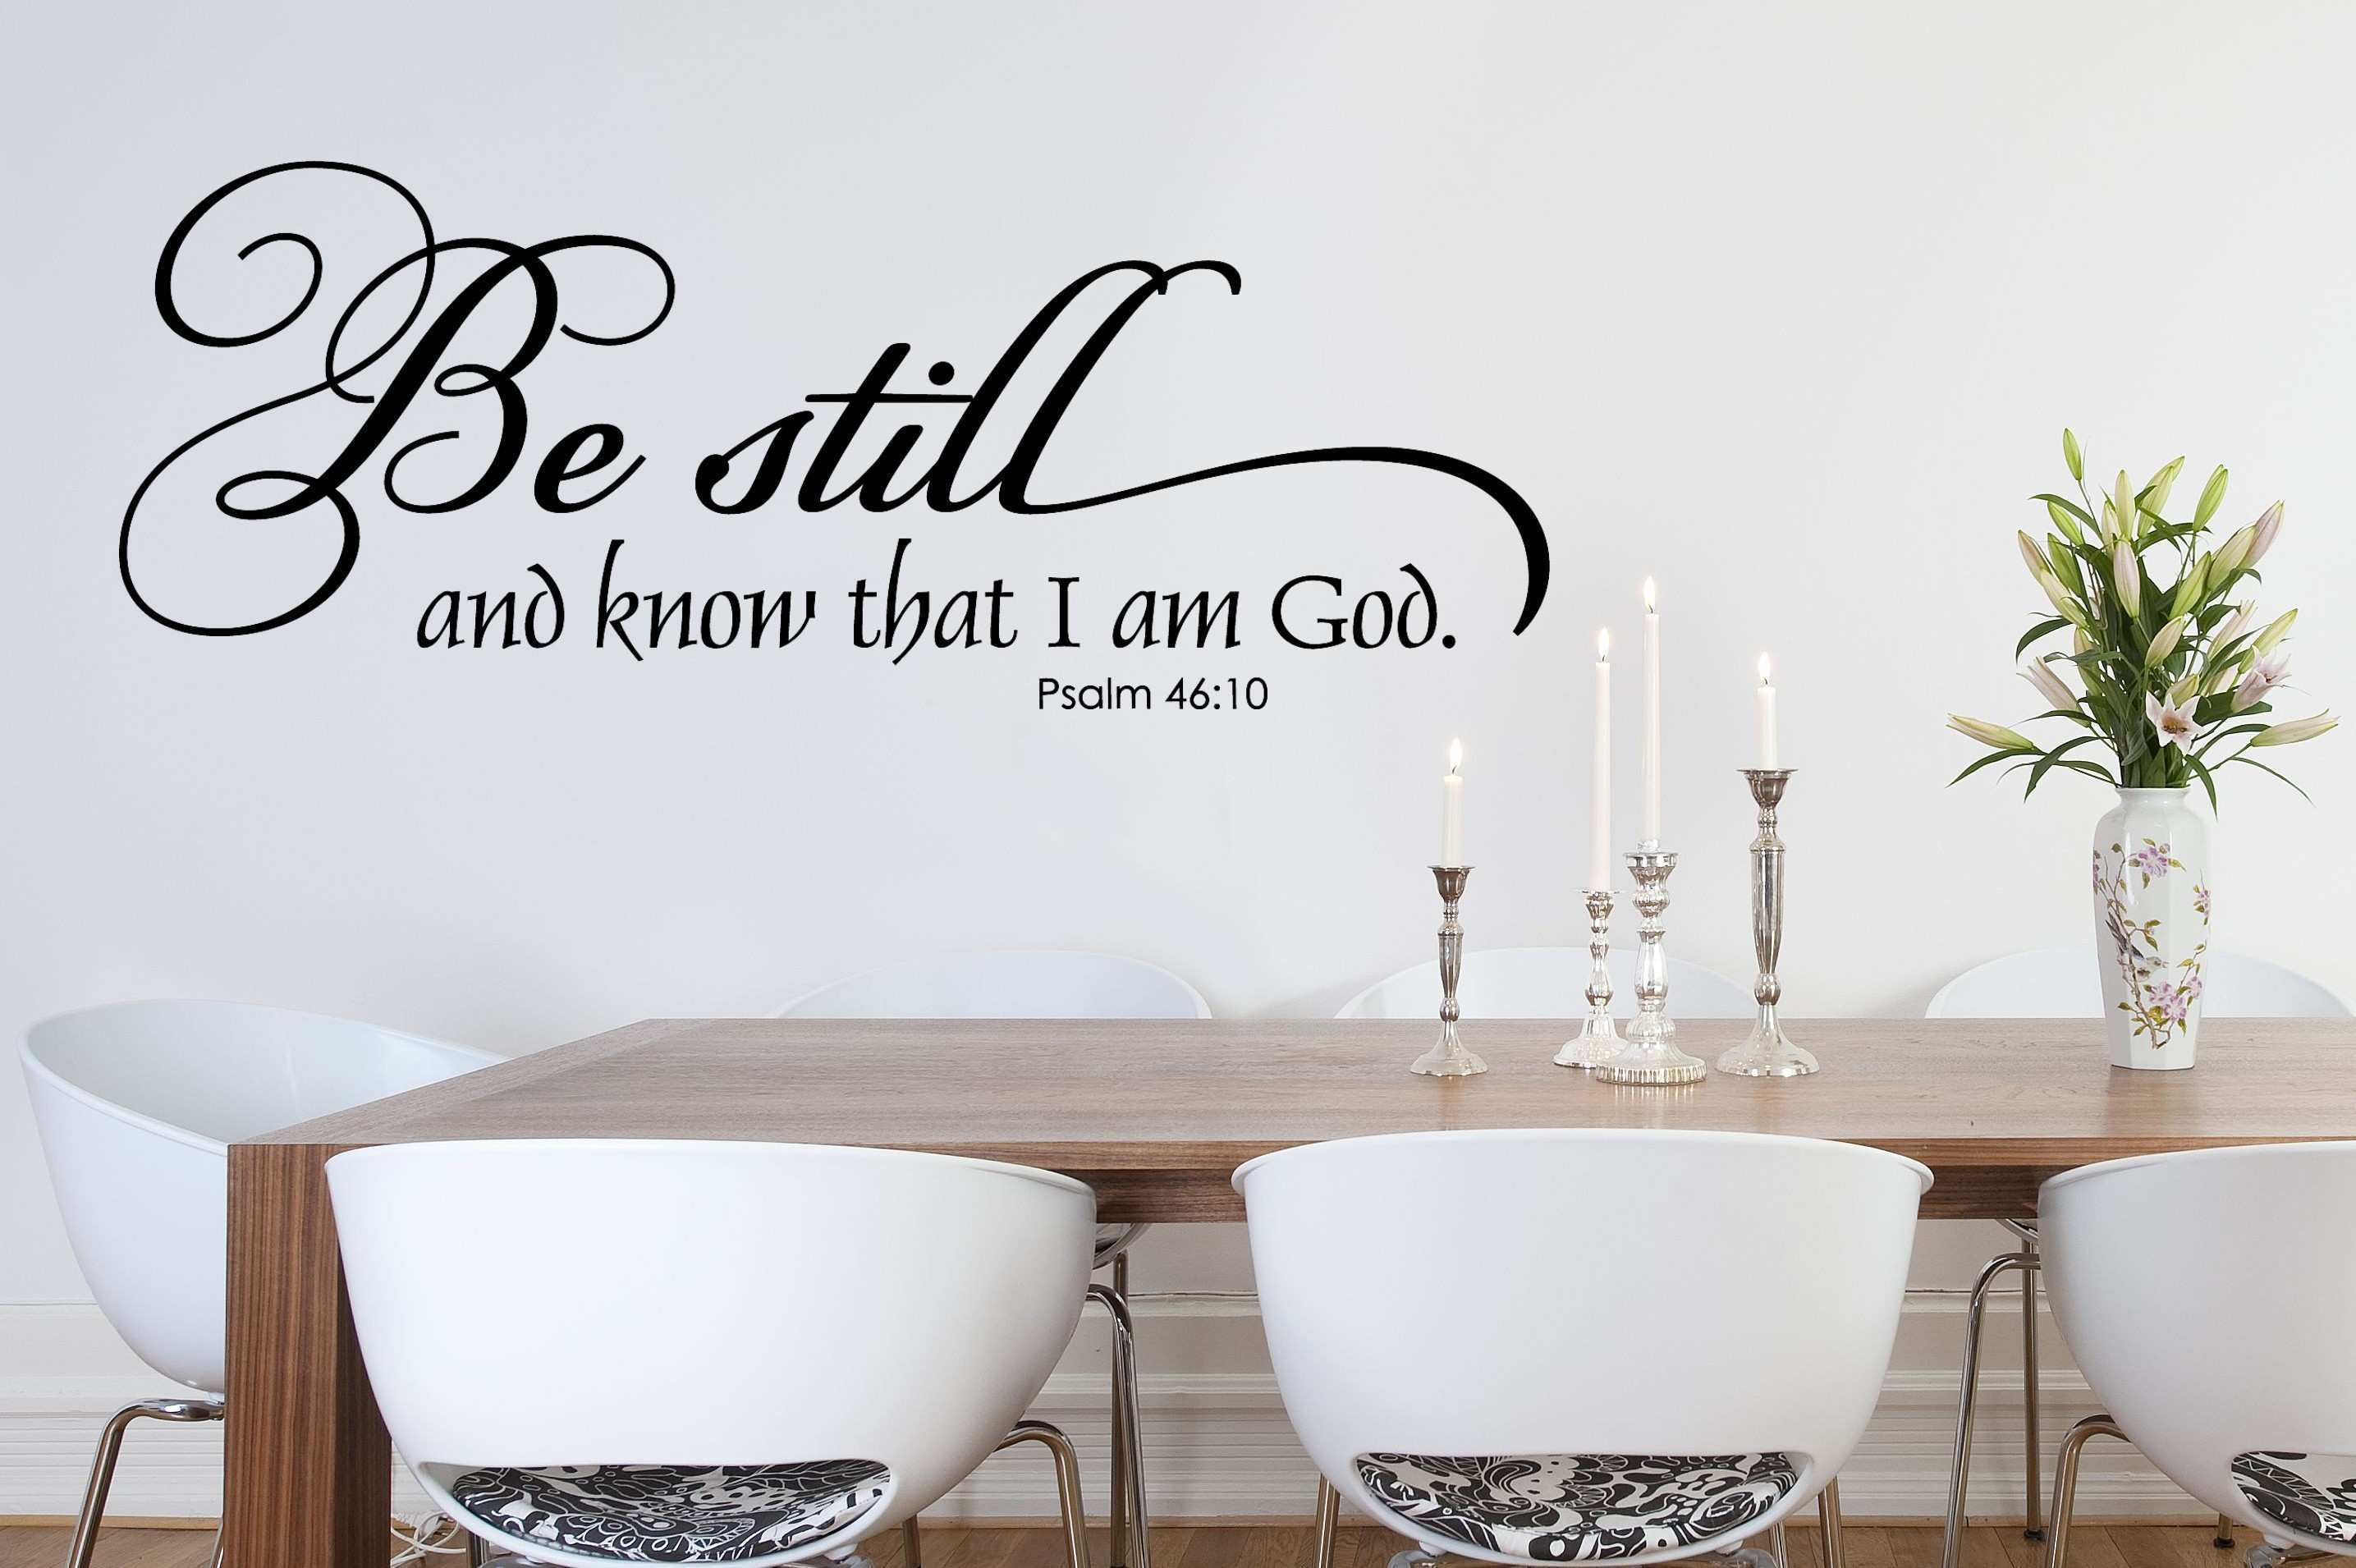 Great Vinyl Wall Decals for Bathroom • Cc colognefo